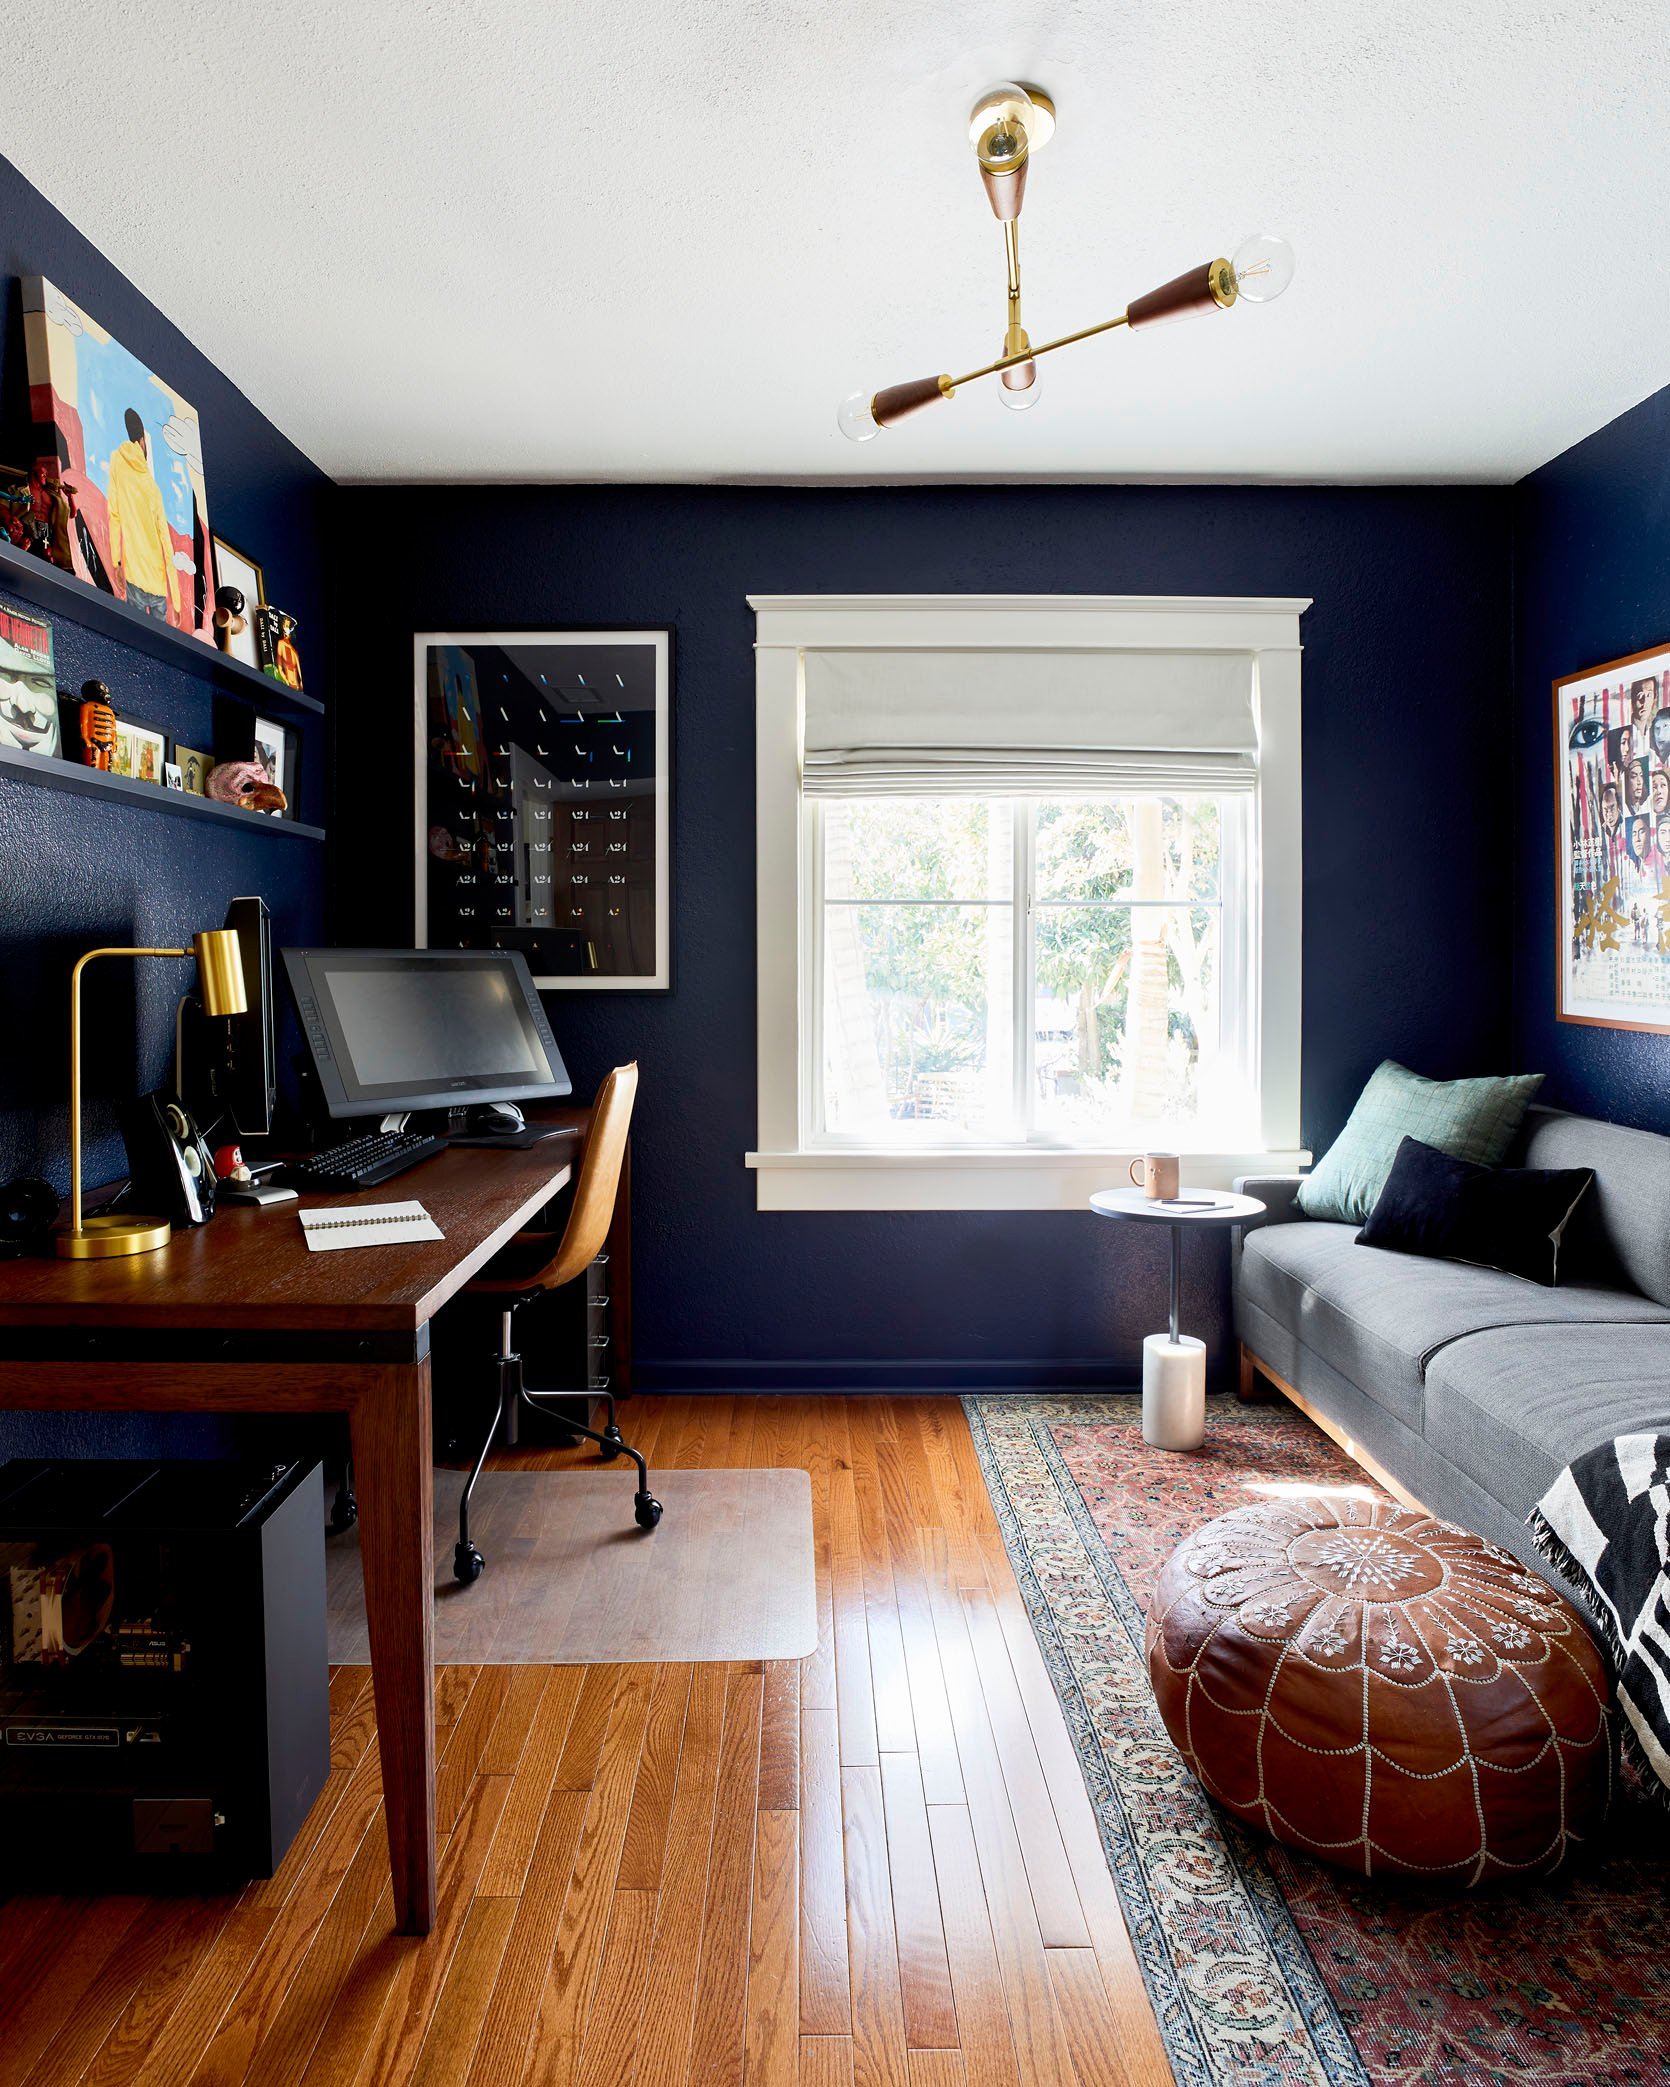 Painting Ideas For An Office from stylebyemilyhenderson.com